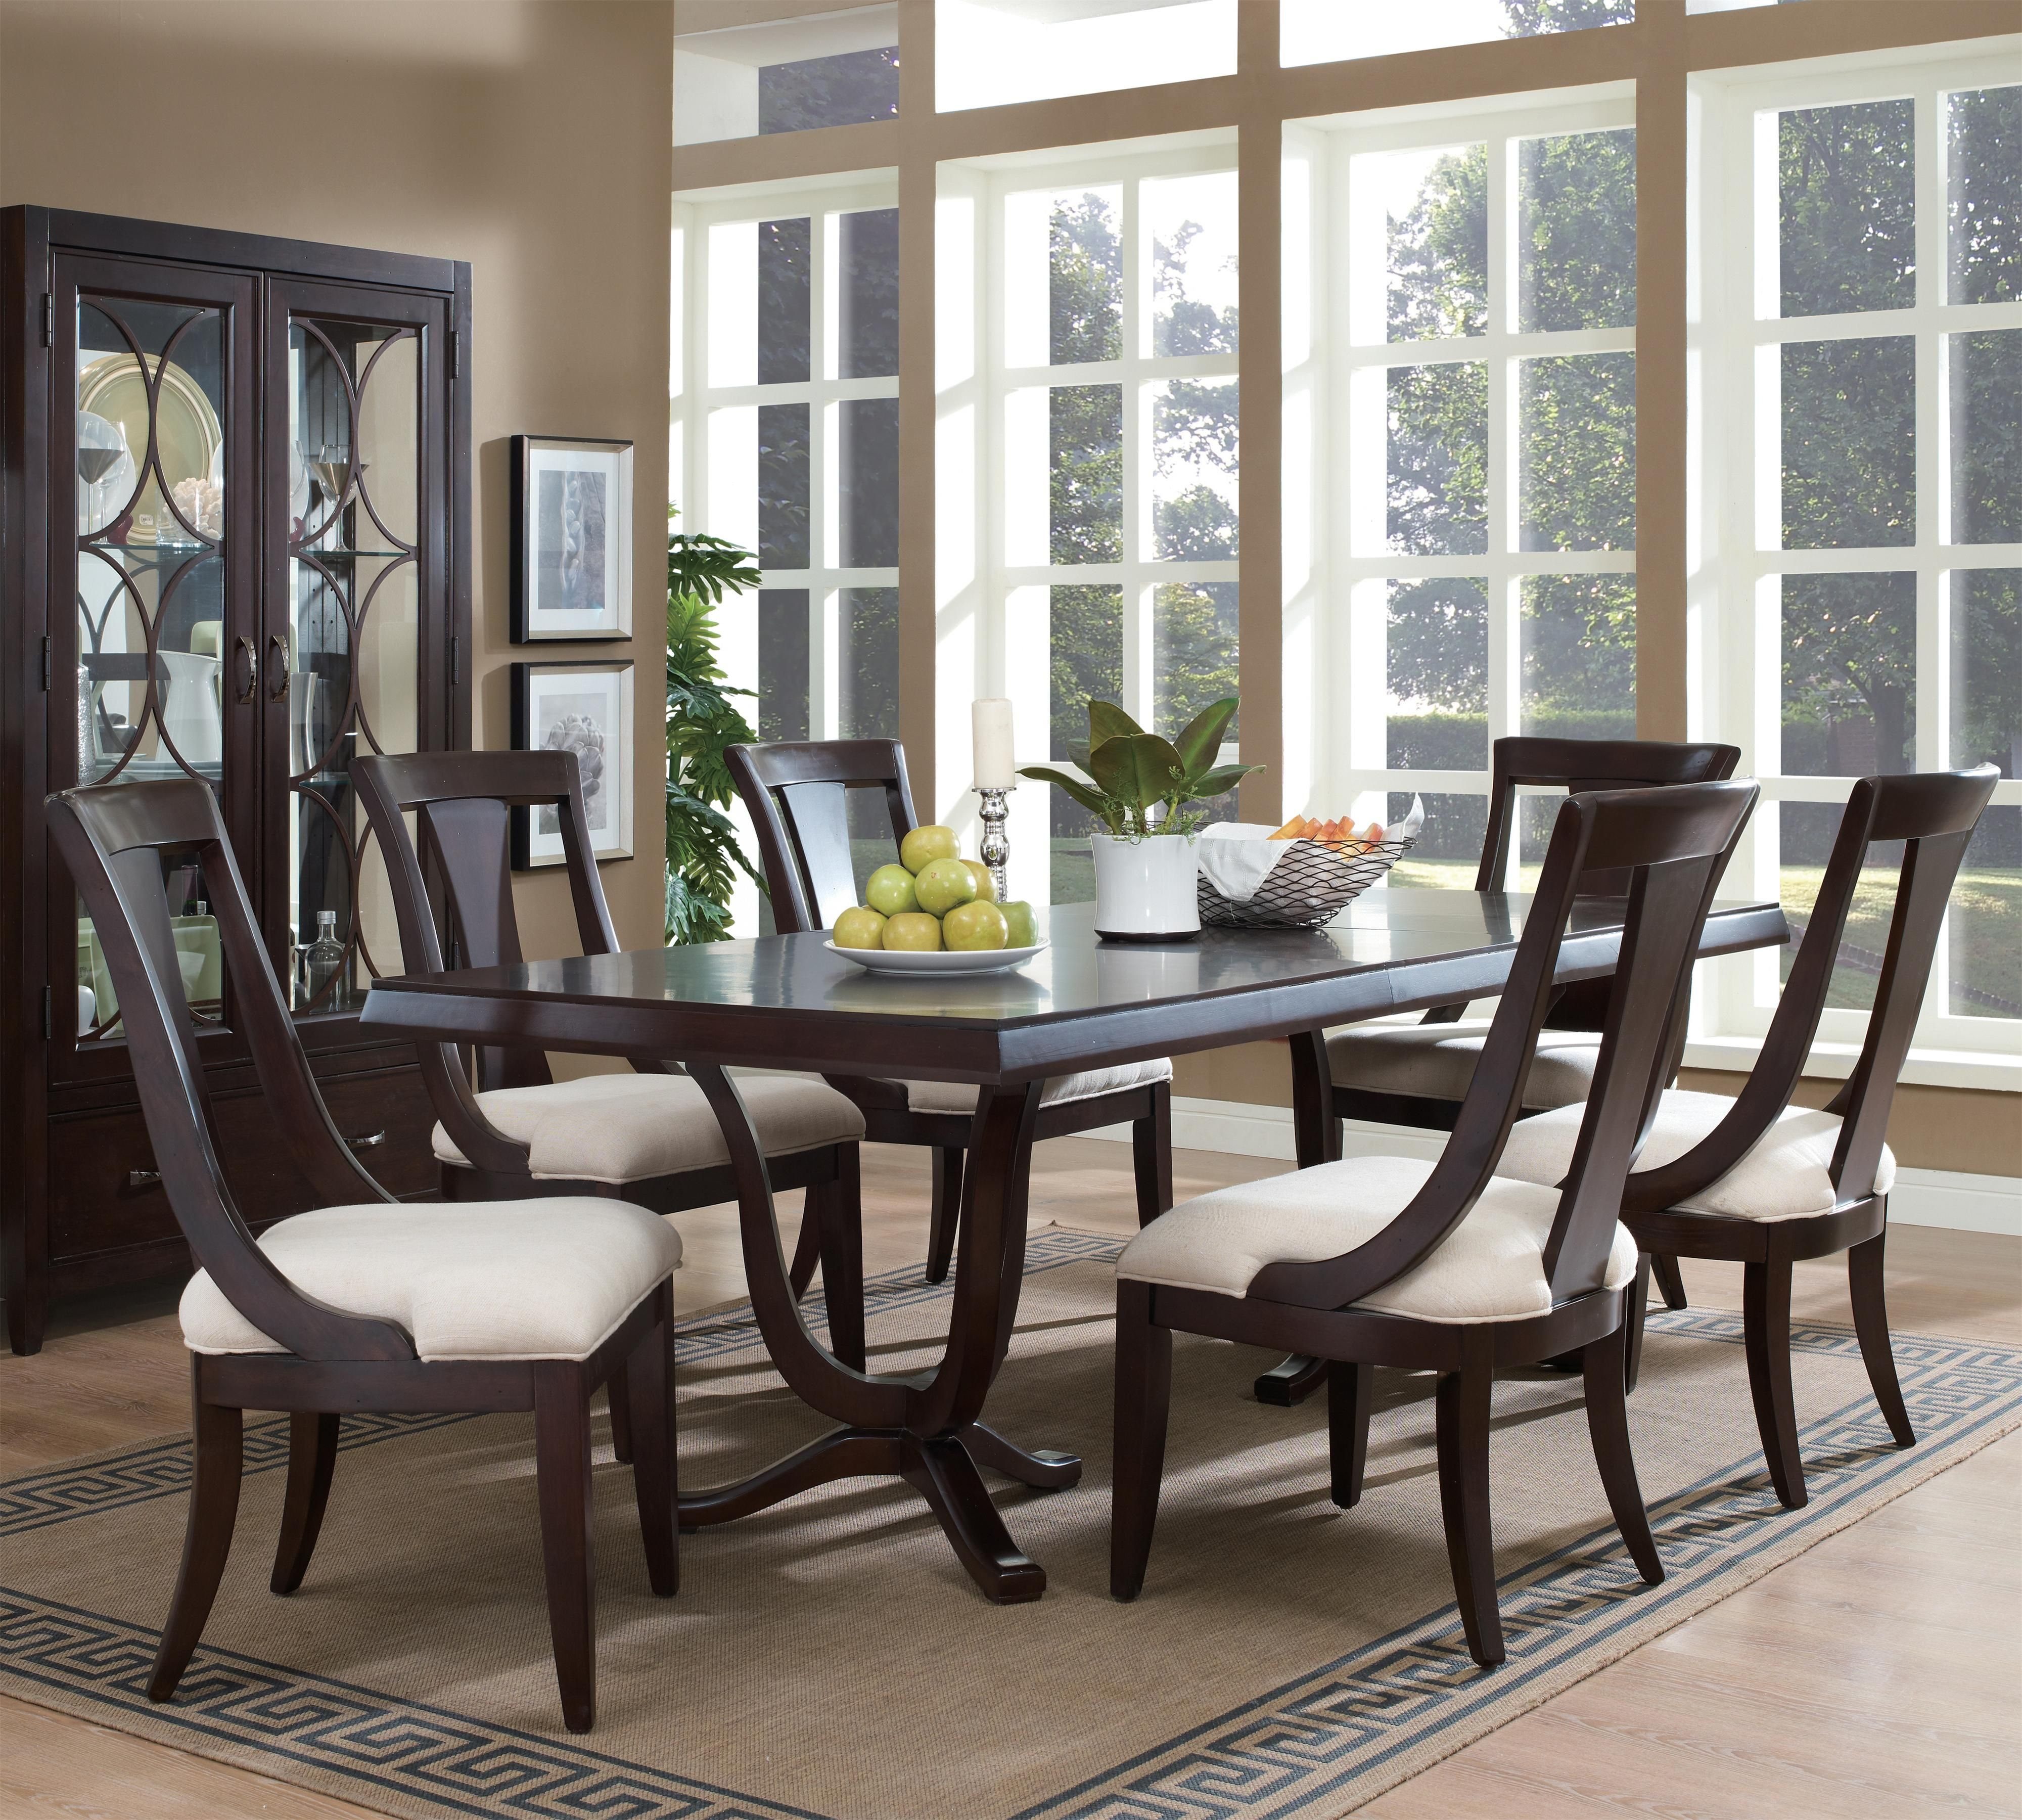 pulaski dining room furniture set. Plaza Square Double-Pedestal Rectangular Dining Table With Splat Back Chairs By Pulaski Furniture Room Set